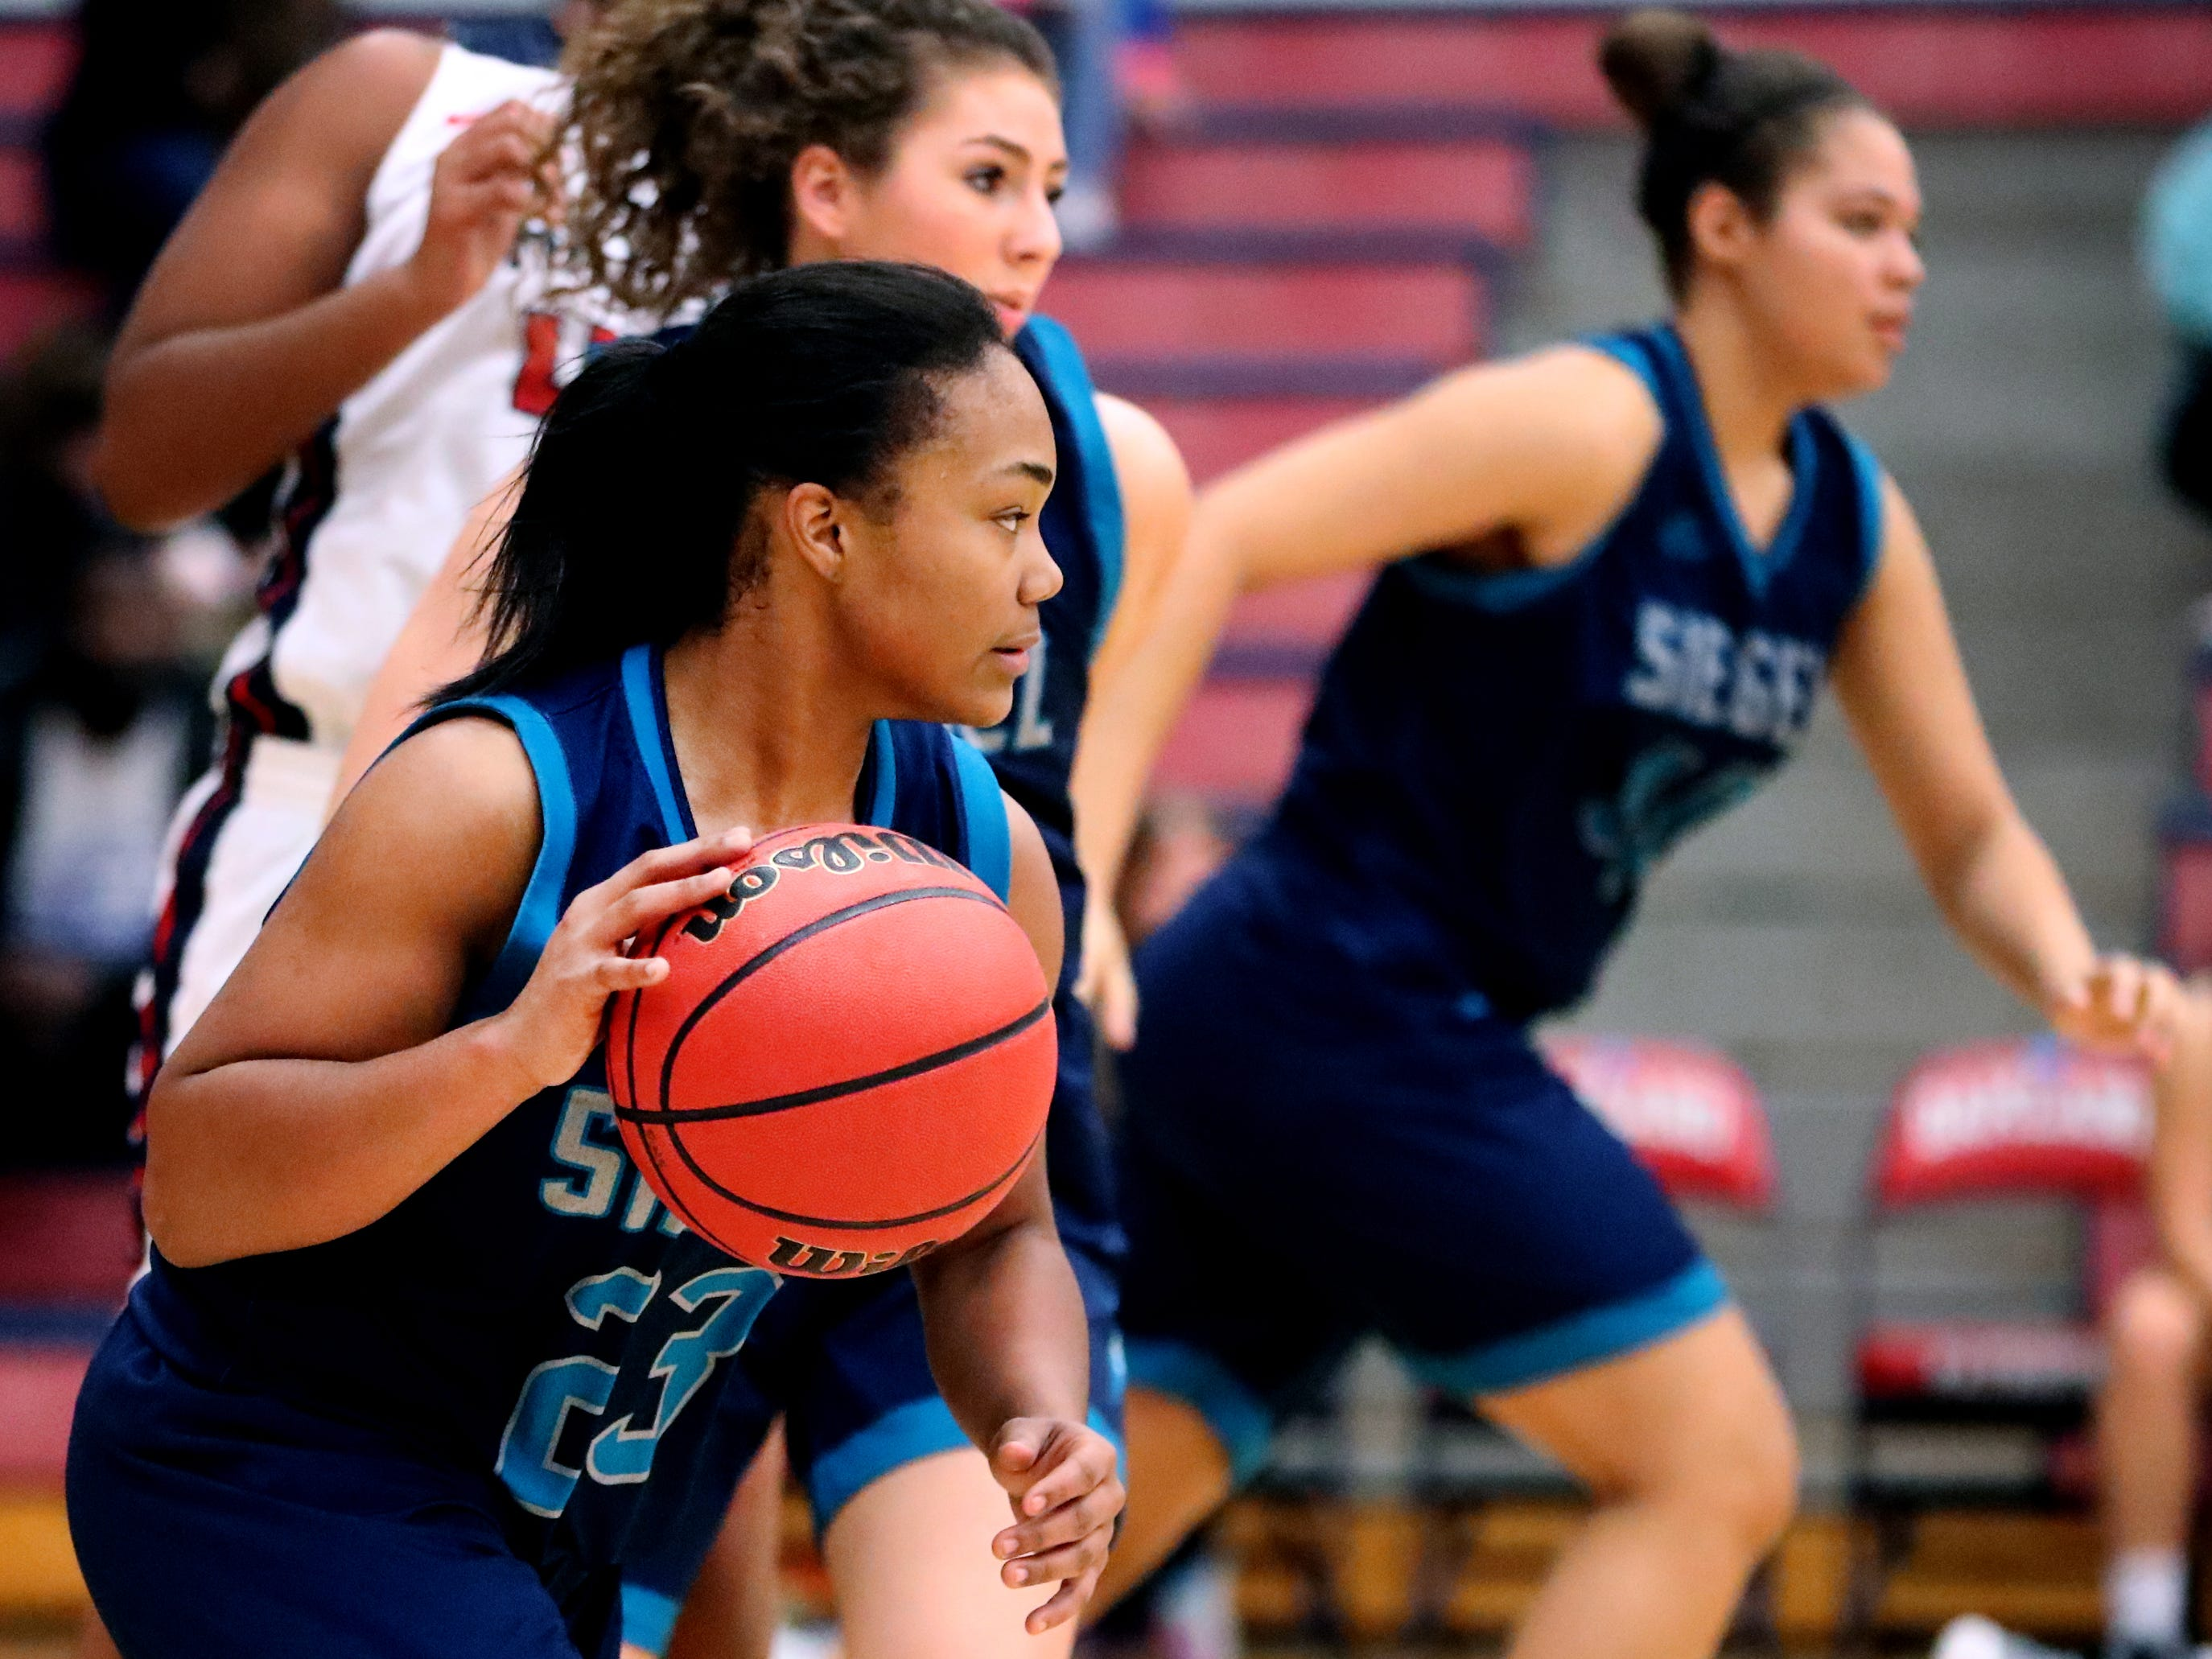 Siegel's Serenity Lillard (23) takes the ball down the court during the game against Oakland on Tuesday, Dec.. 4, 2018.